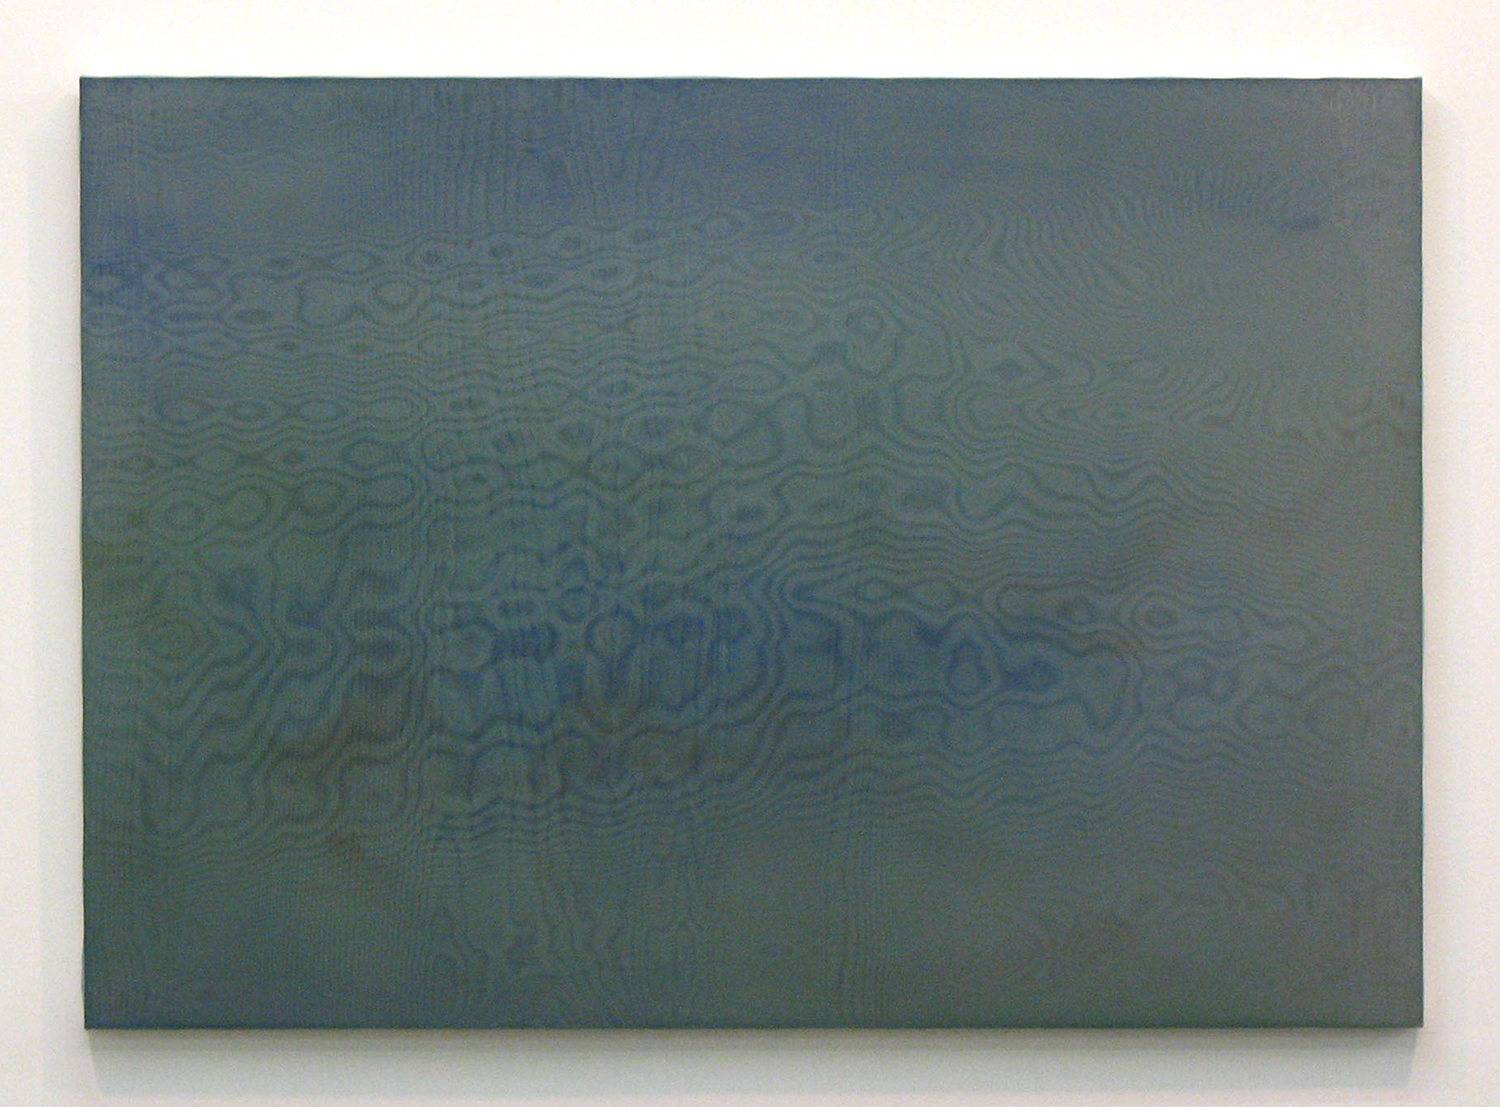 afterglow #1|残光 #1|panel, stainless steel sheet, glass organdy, acrylic|594 x 840 mm|2008